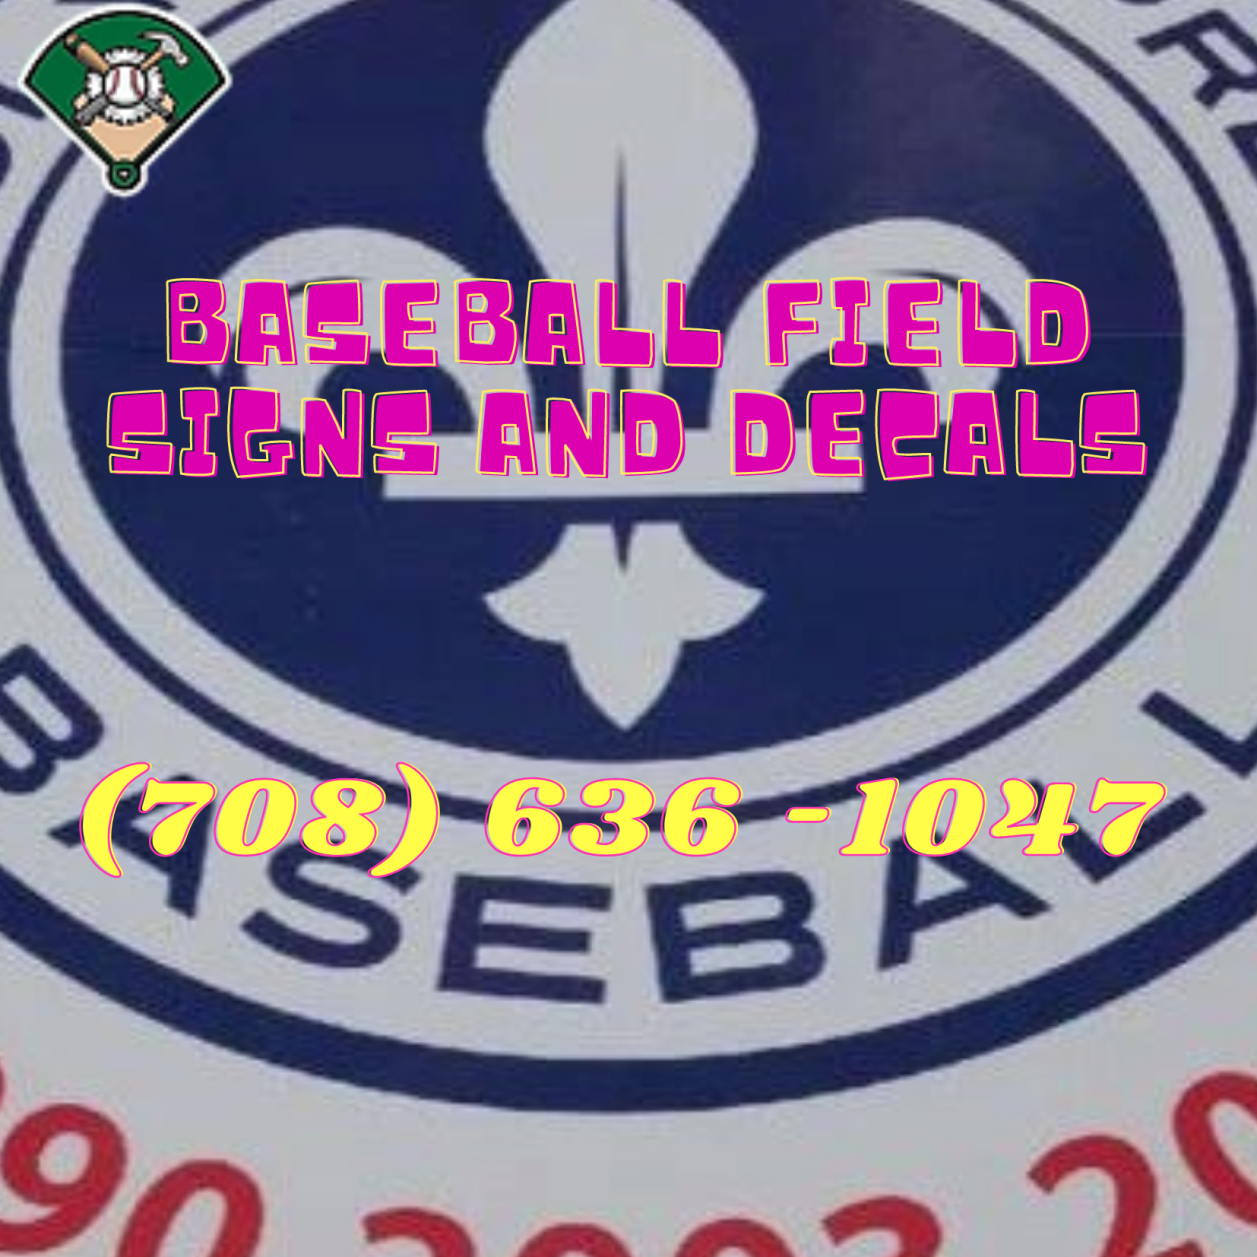 Baseball Field Signs And Decals In 2020 Baseball Decals Baseball Field Baseball